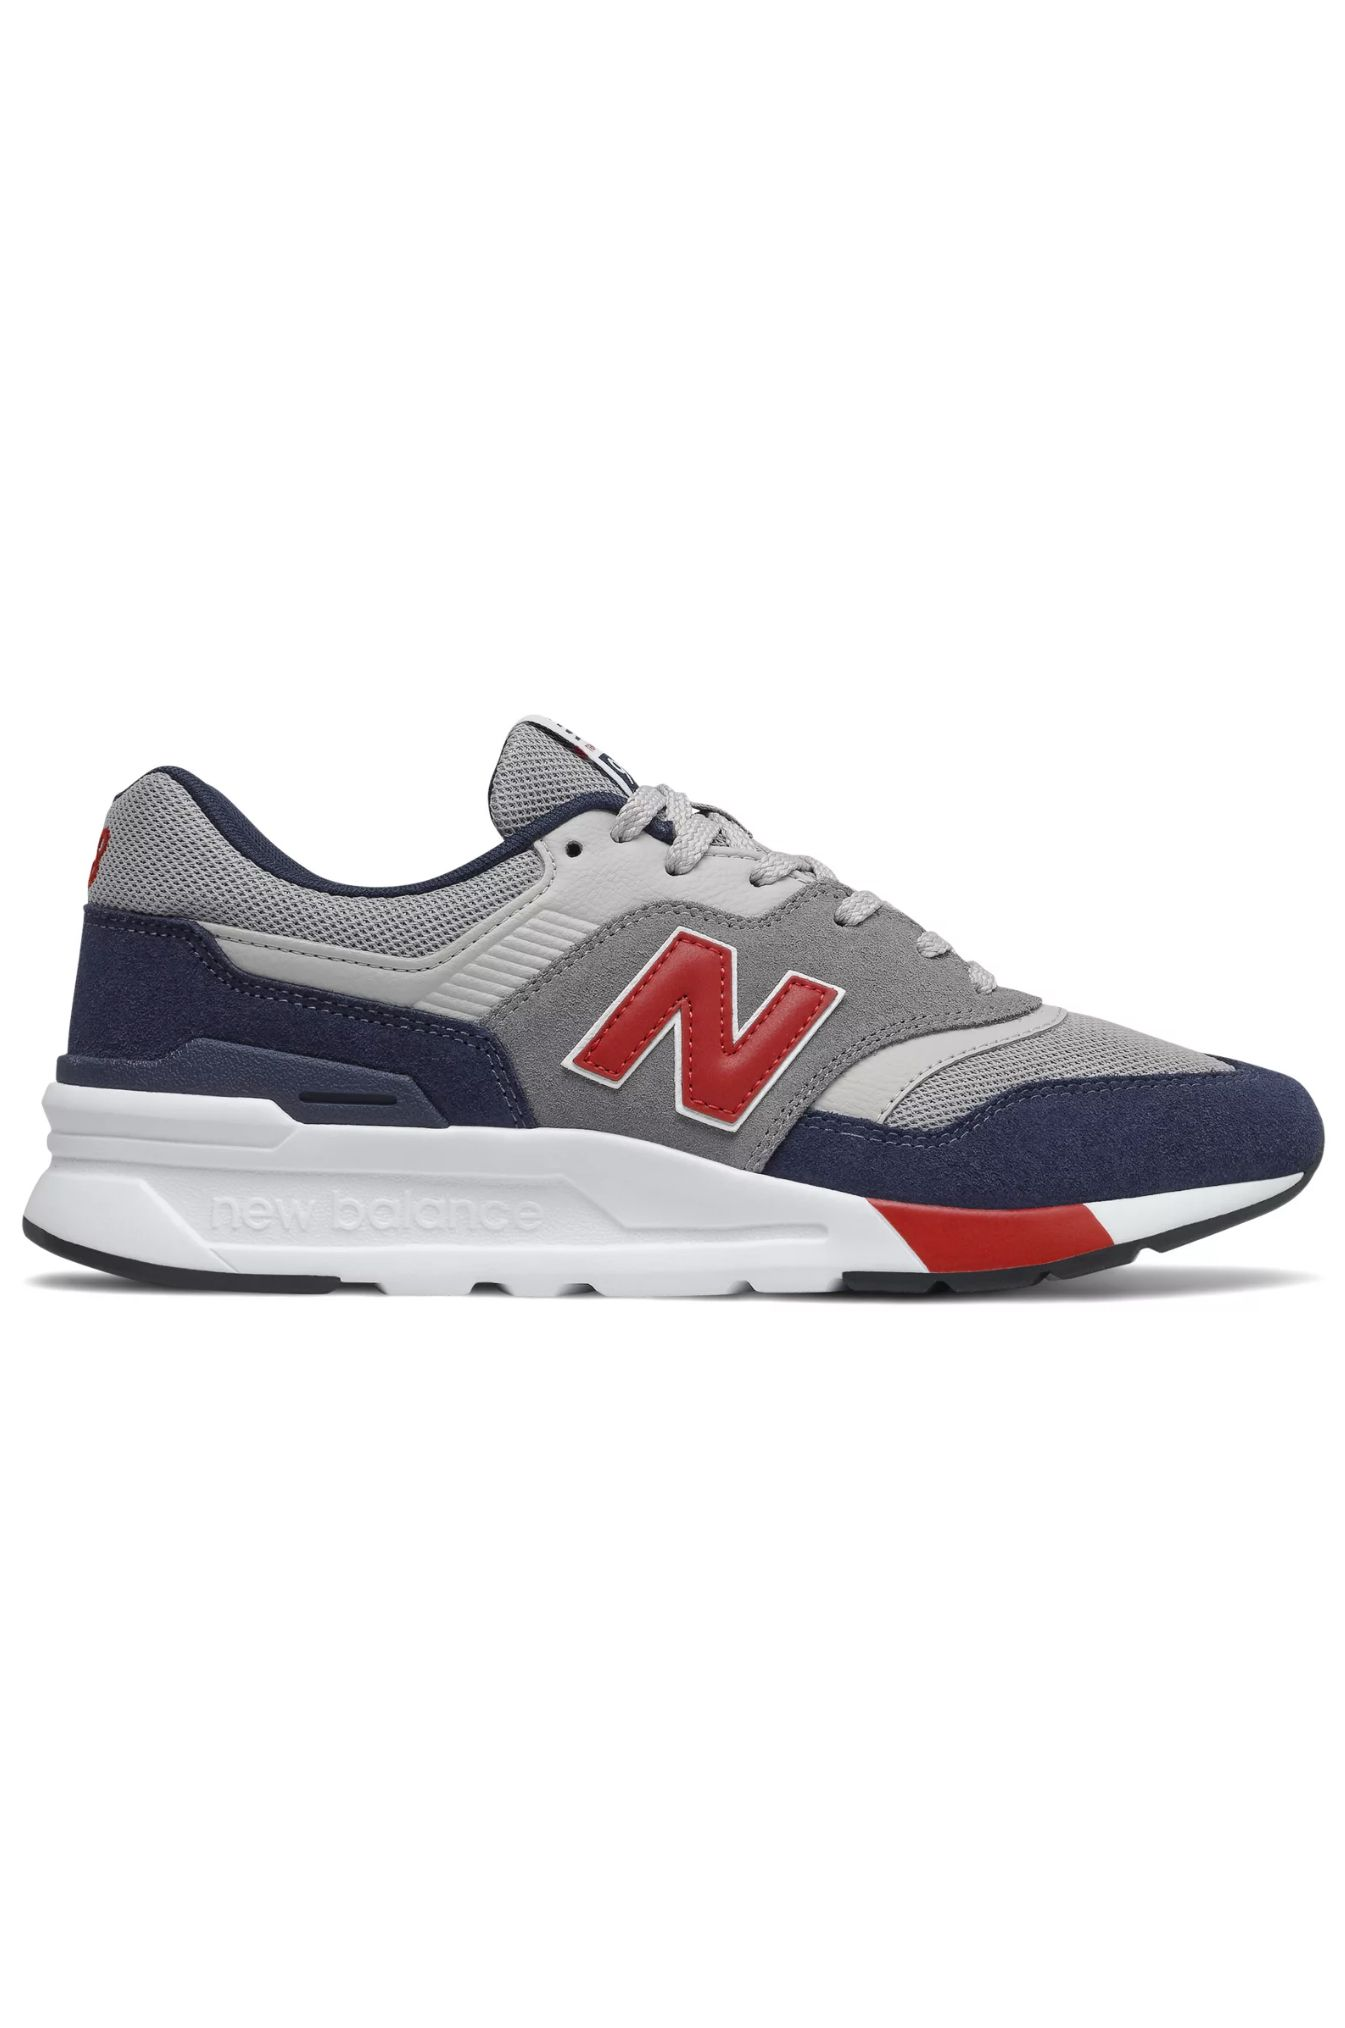 Tenis New Balance CM997 Red/Navy